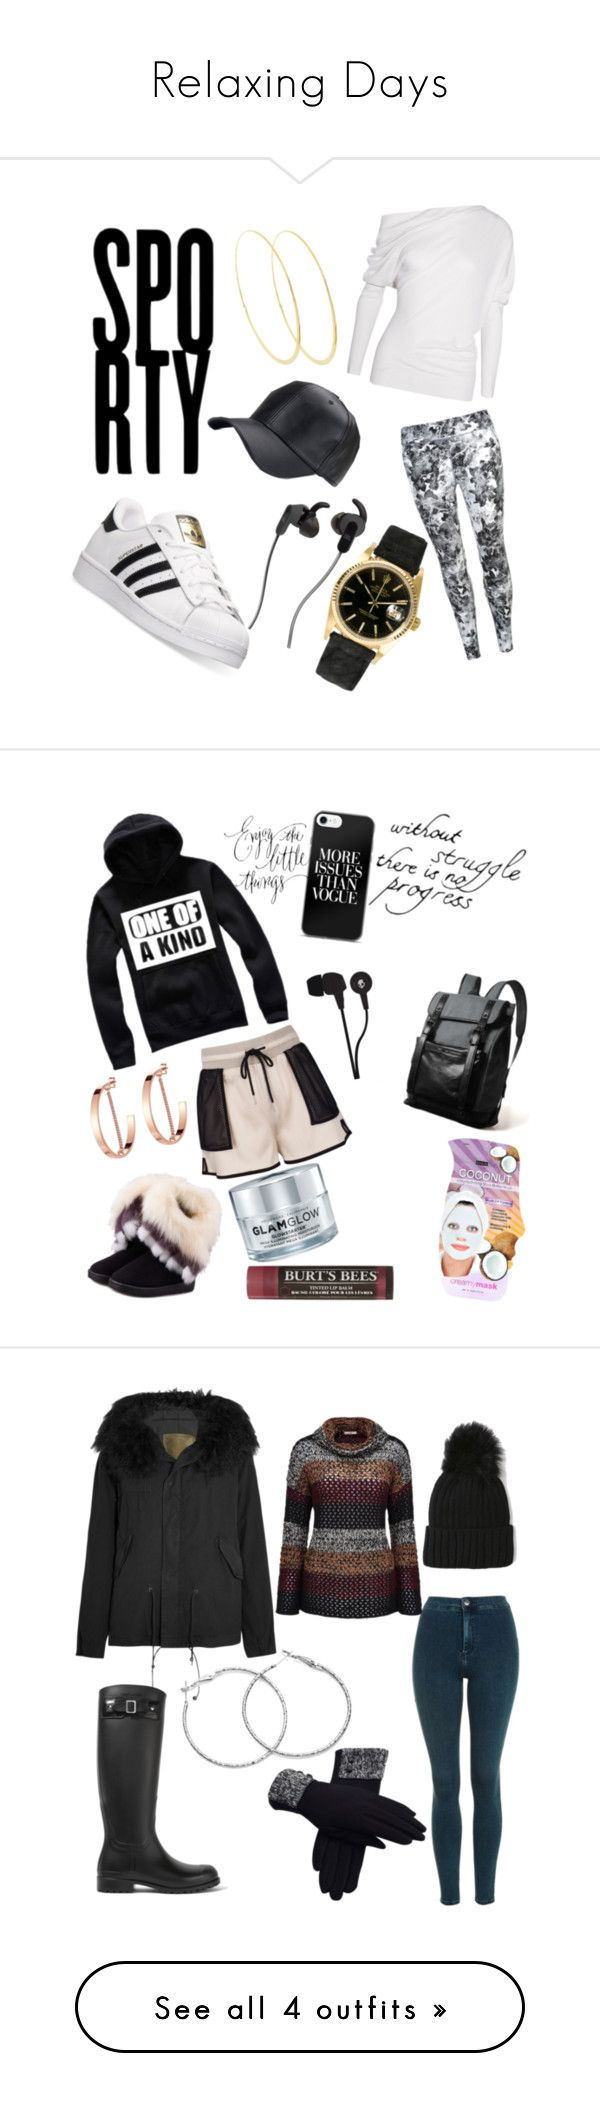 """""""Relaxing Days"""" by yortiz1974 ❤ liked on Polyvore featuring Tom Ford, USA Pro, adidas, Lana, JBL, Rolex, WithChic, Jenny Bird, GlamGlow and Burt's Bees"""